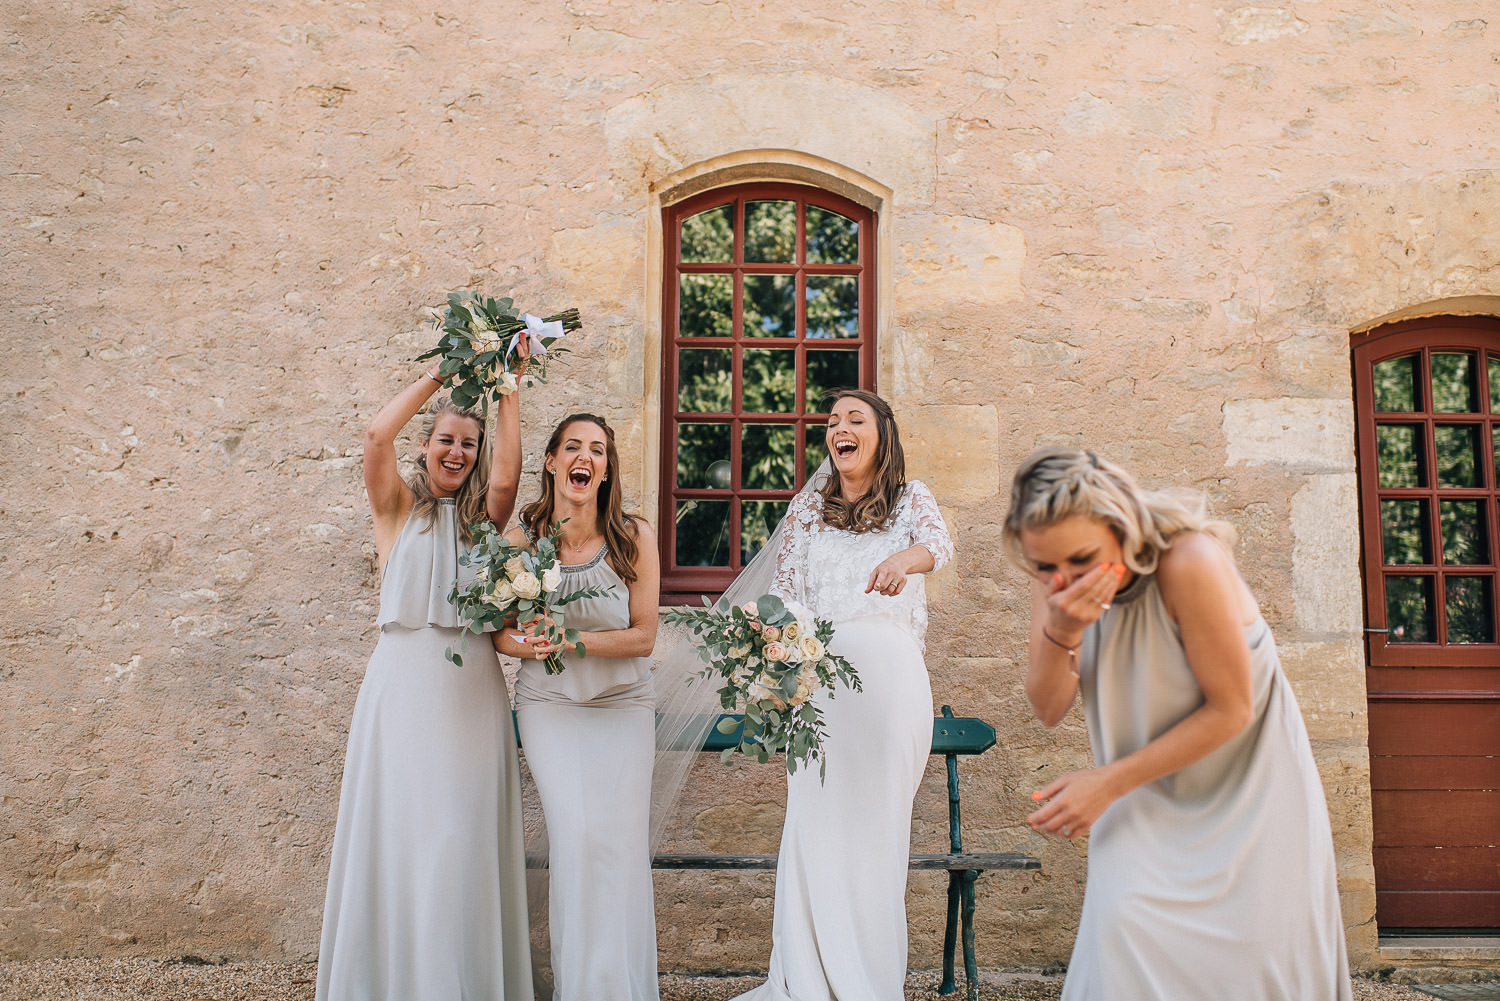 Ellerymay bouquet flowers in chateau de la bourlie wedding by destination wedding photographer the shannons photography